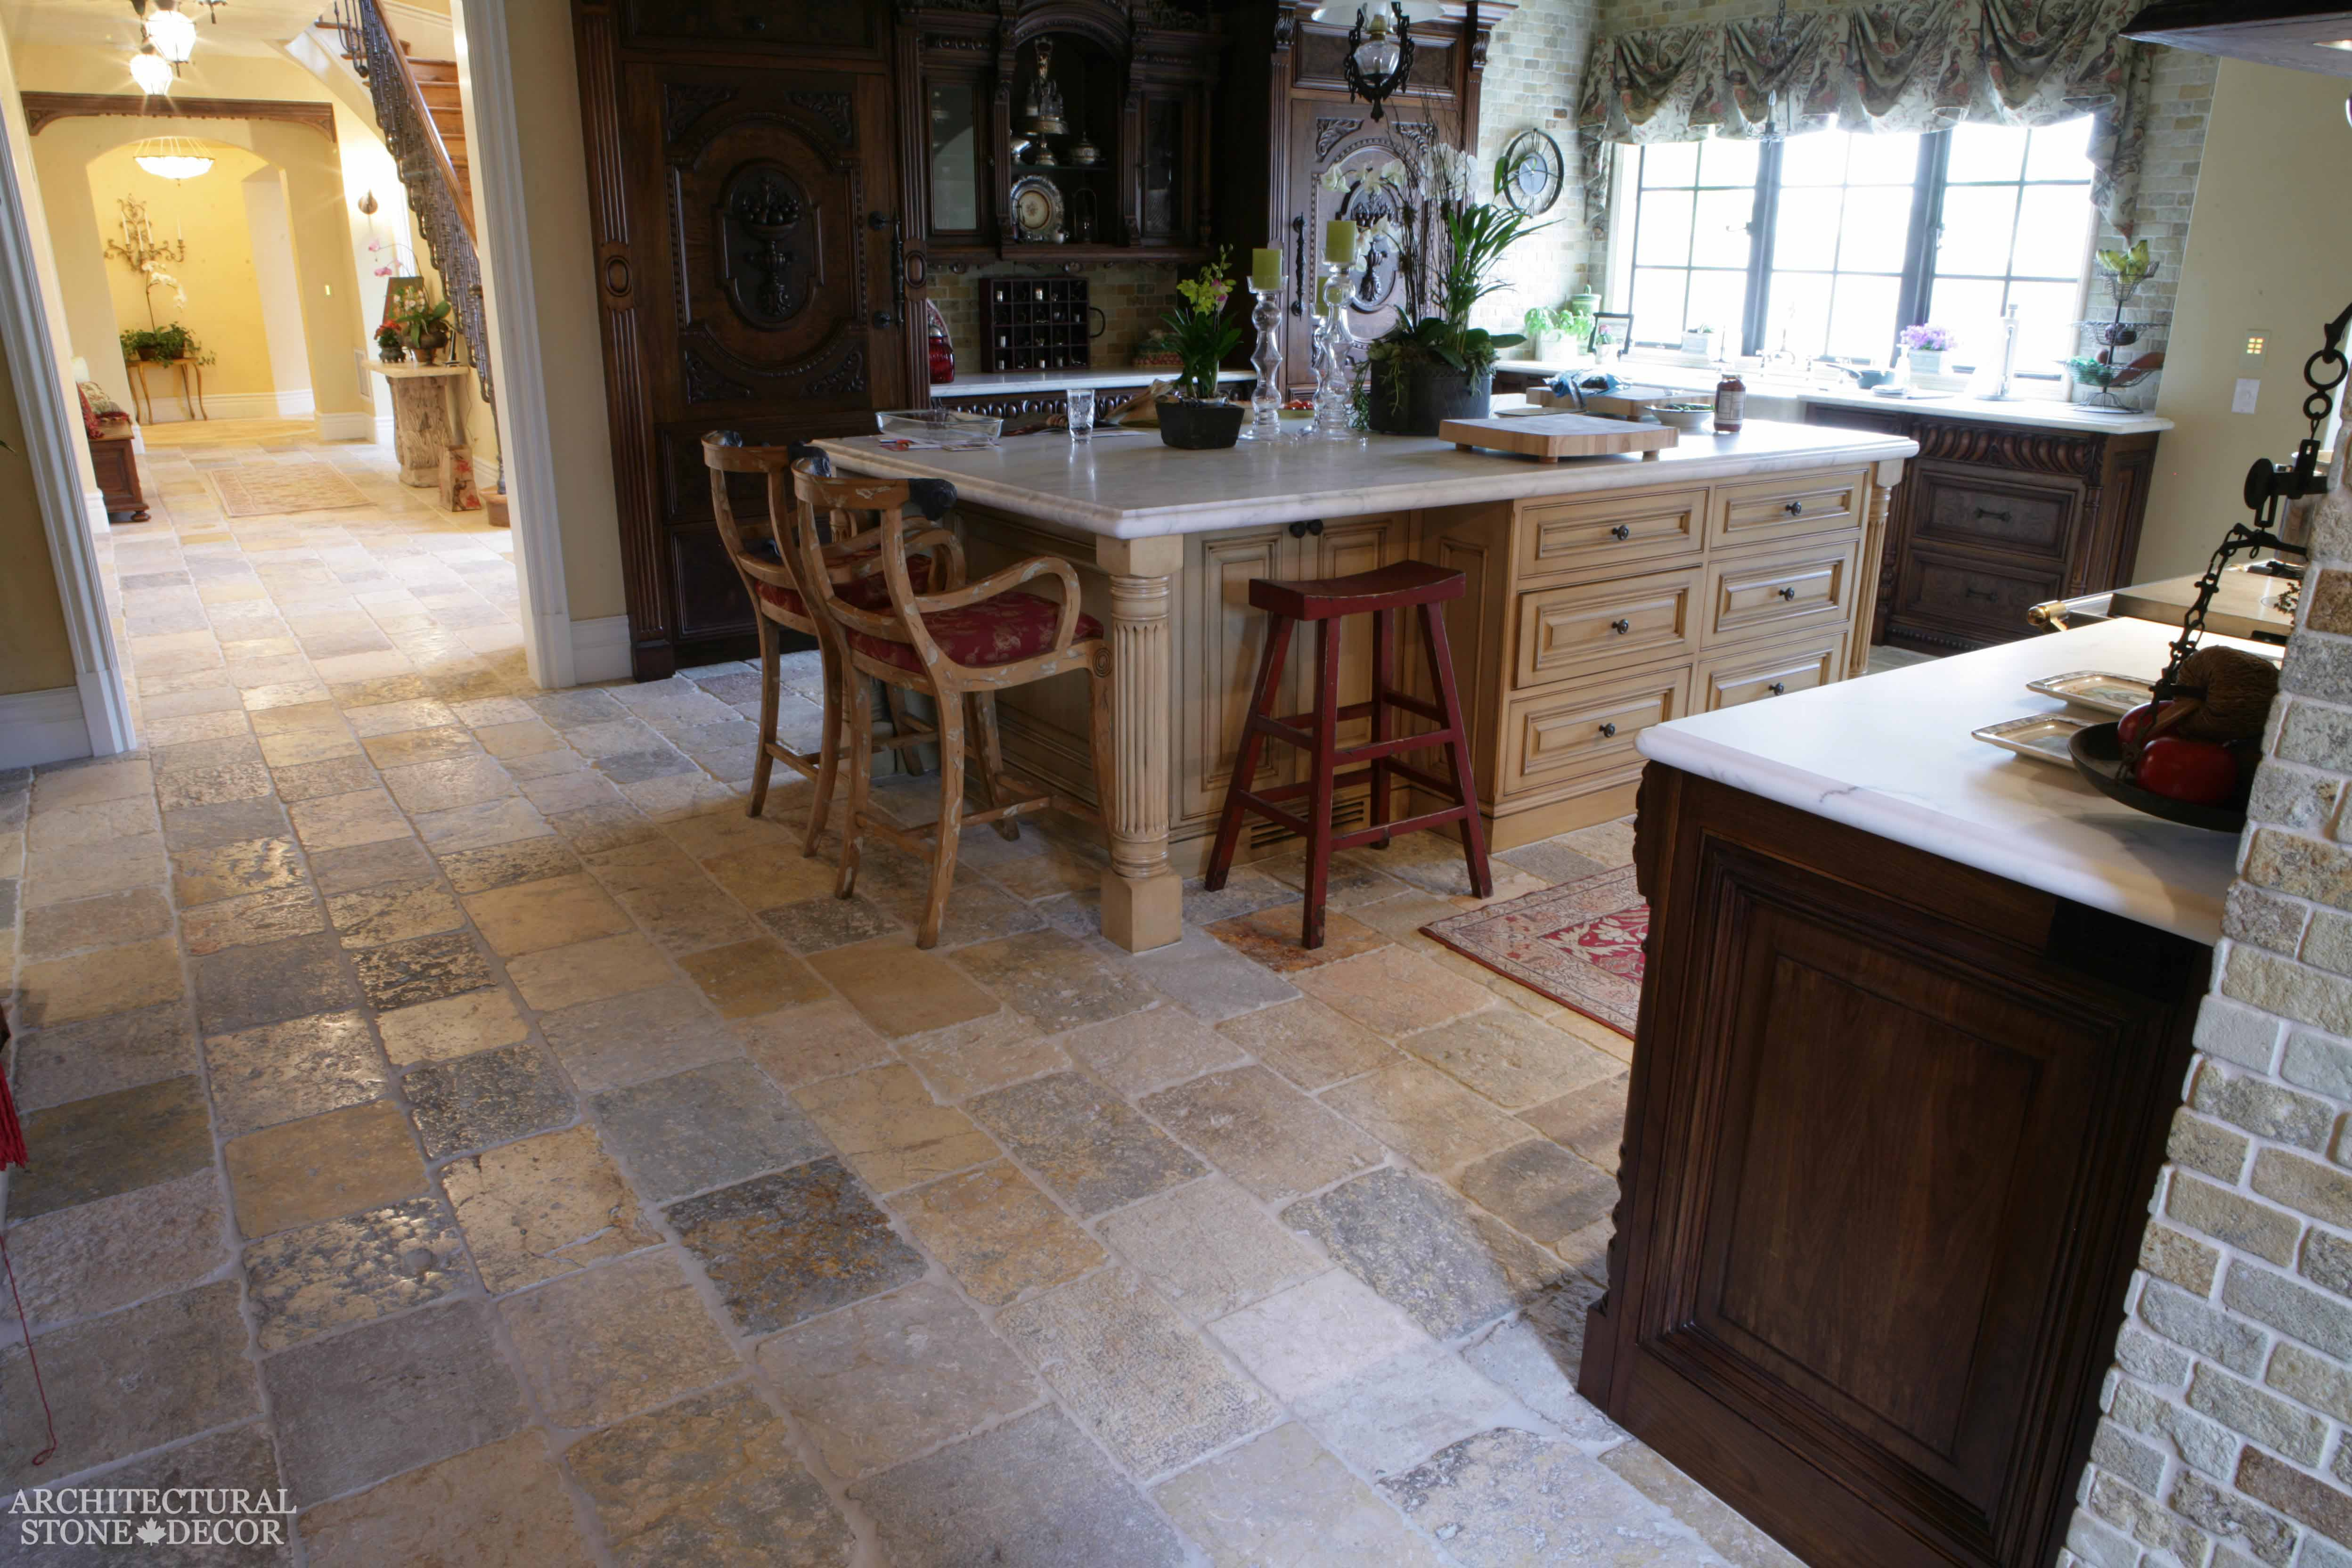 From ancient europe to your home the best in antique limestone english style open kitchen area dalle de bourgogne reclaimed salvaged antique limestone flooring tiles running bond dailygadgetfo Choice Image